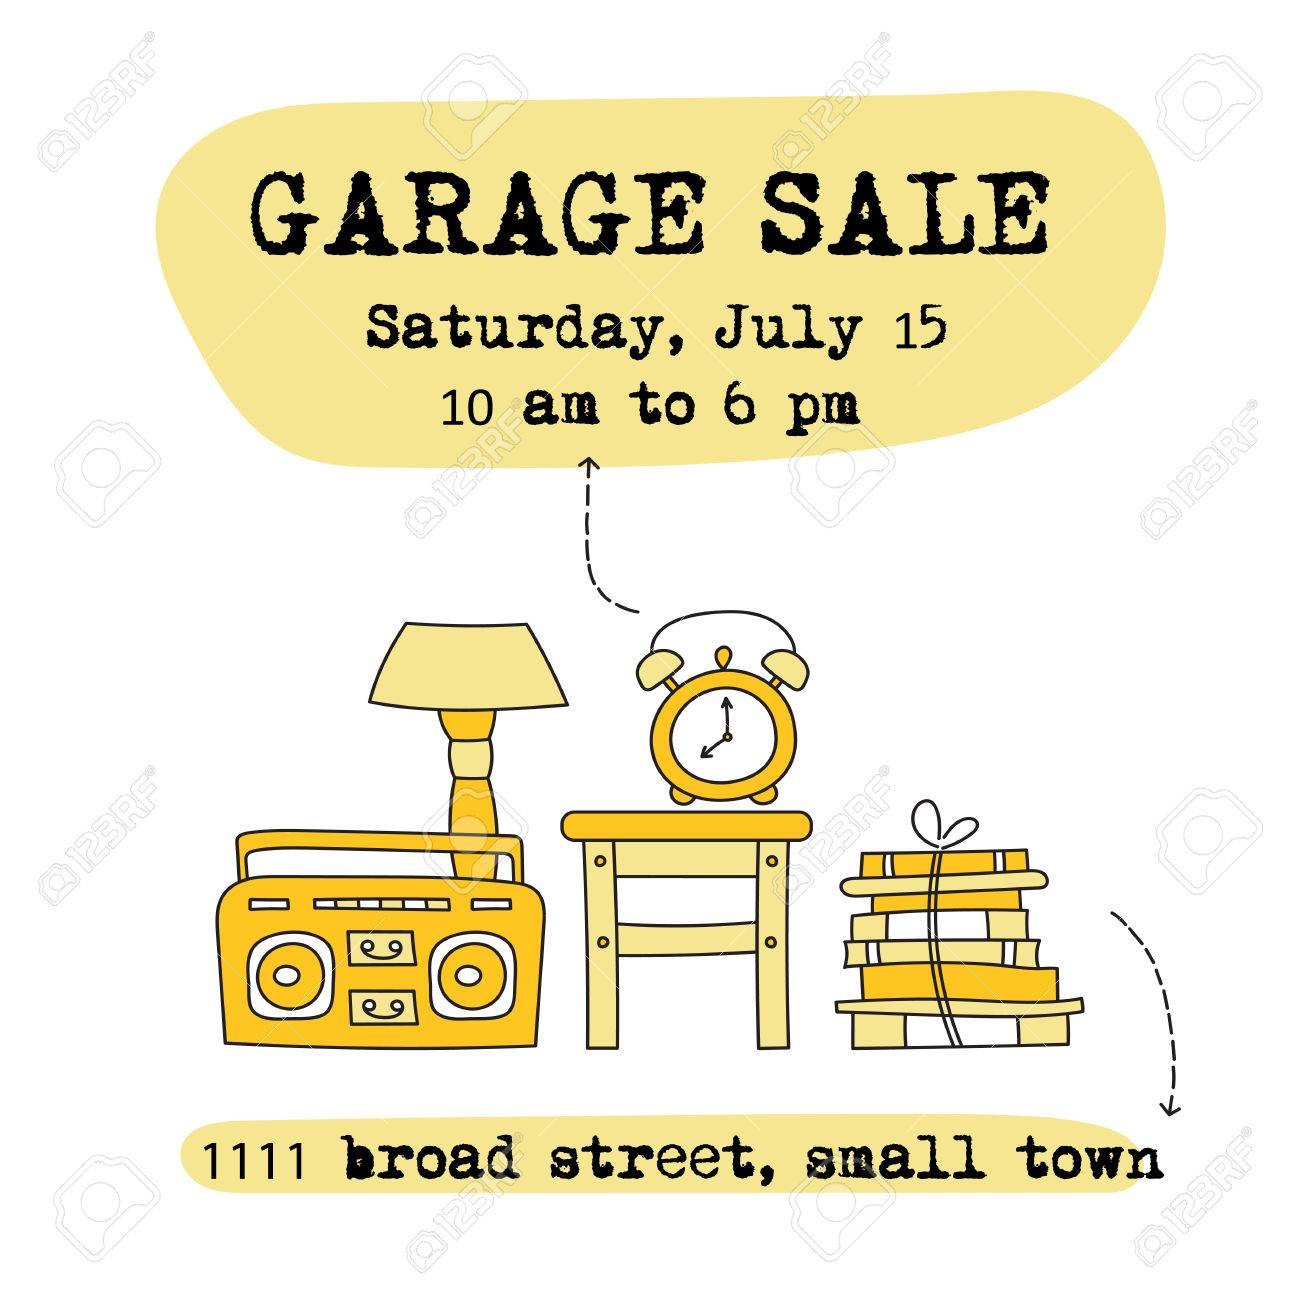 Garage Sale Website Garage Sale Household Used Goods Square Banner Template For